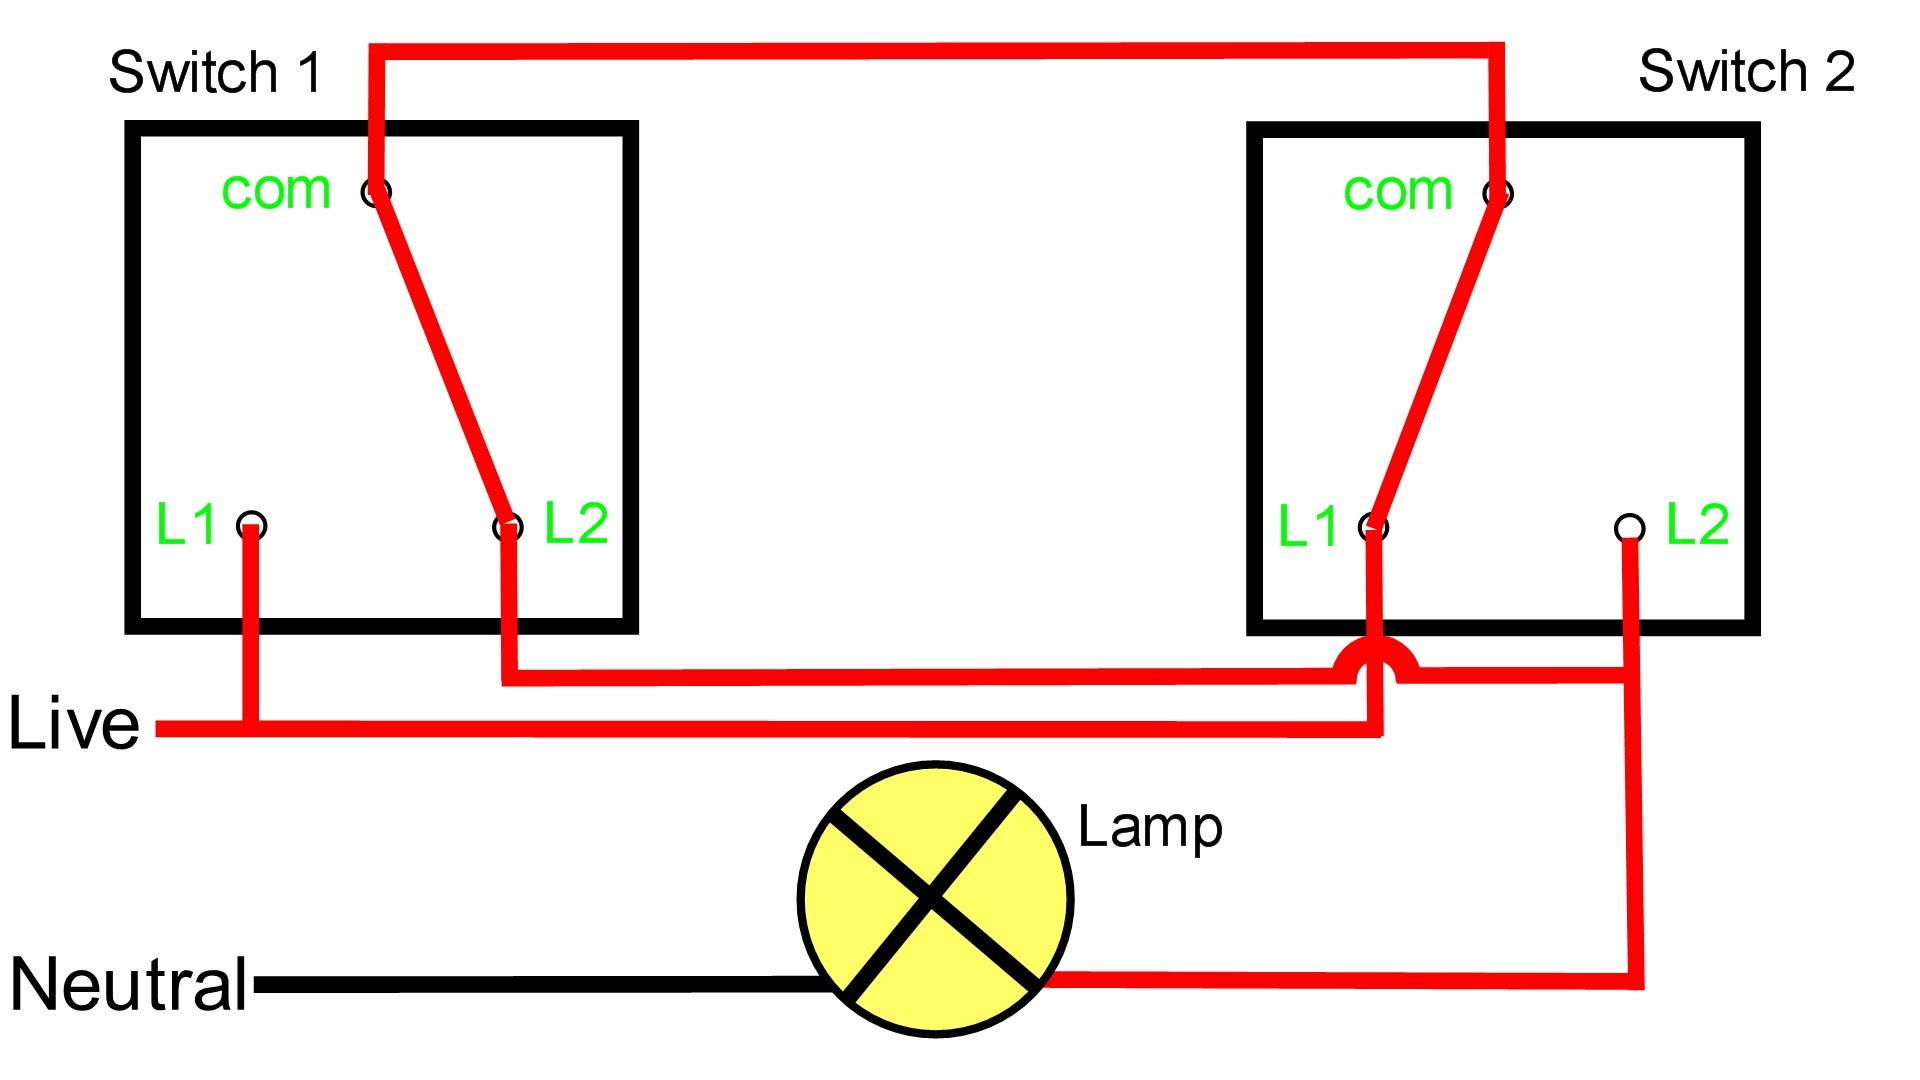 Electrical Wiring Diagram In Urdu | Wiring Library - 2 Way Light Switch Wiring Diagram